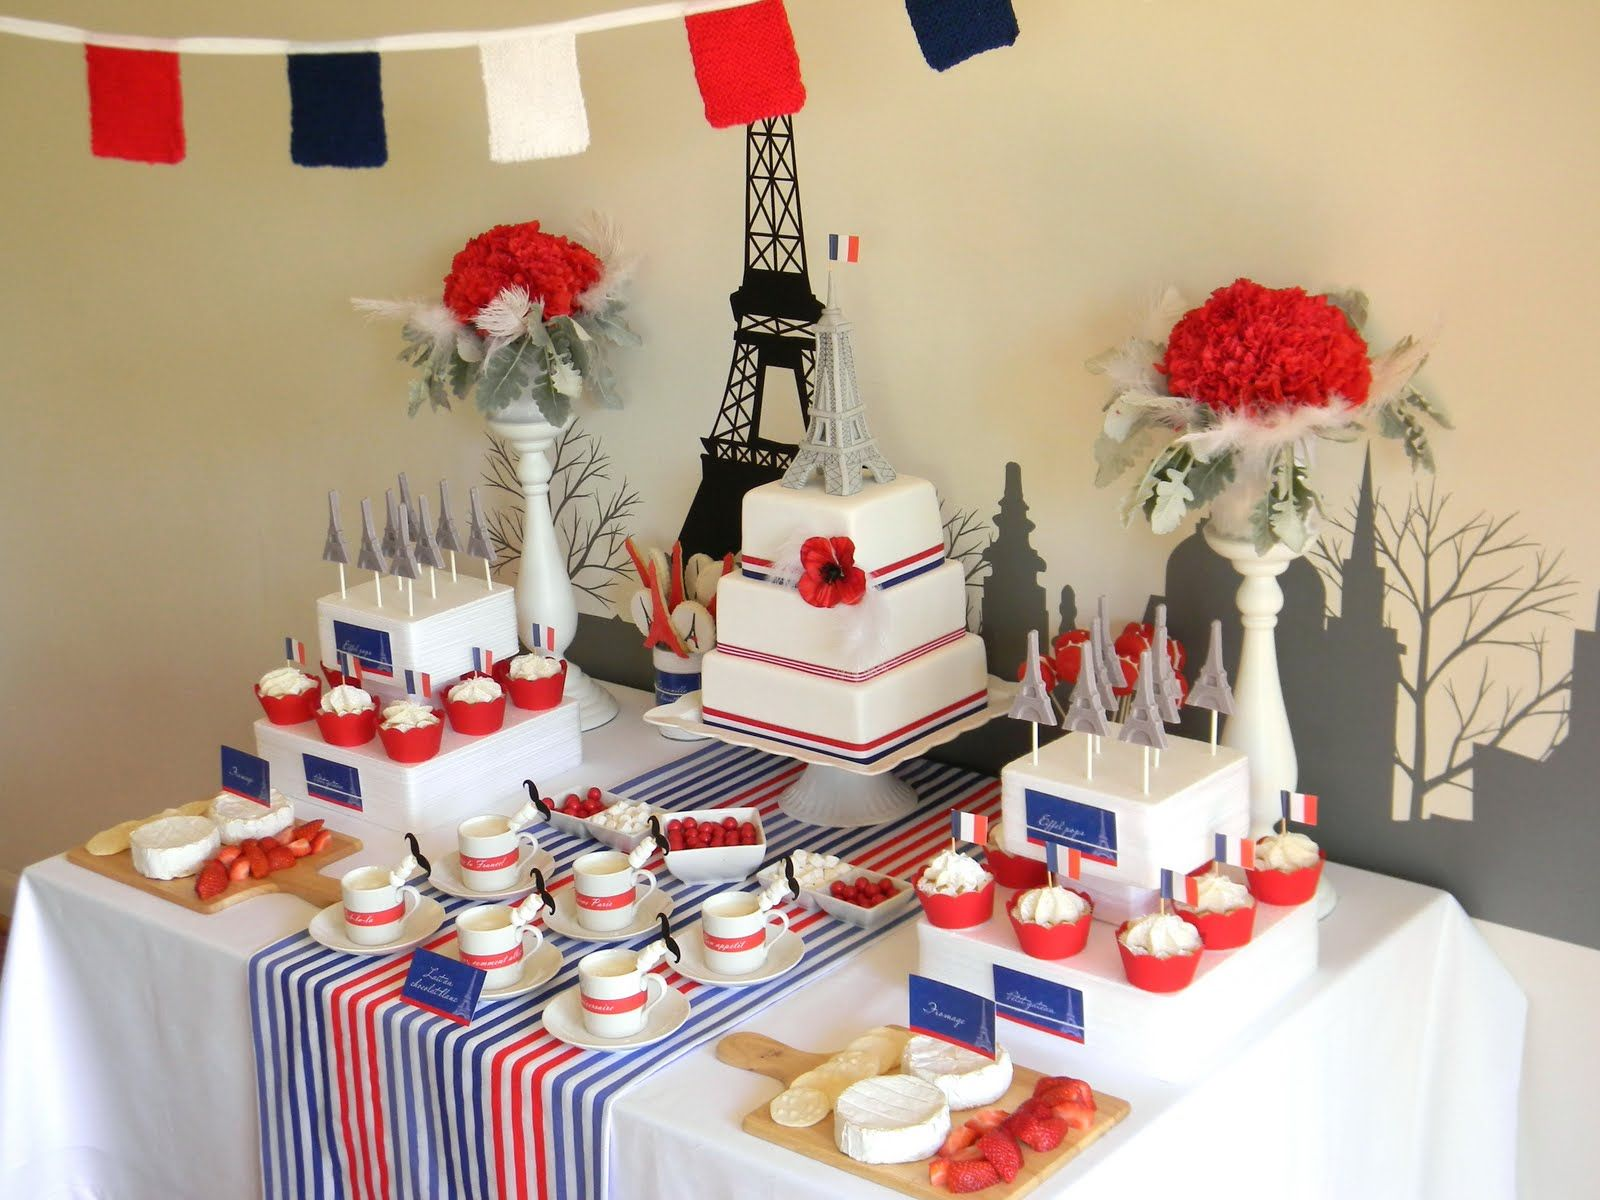 French party perdon my french pinterest french themed parties birthdays and themed parties - French themed table decorations ...